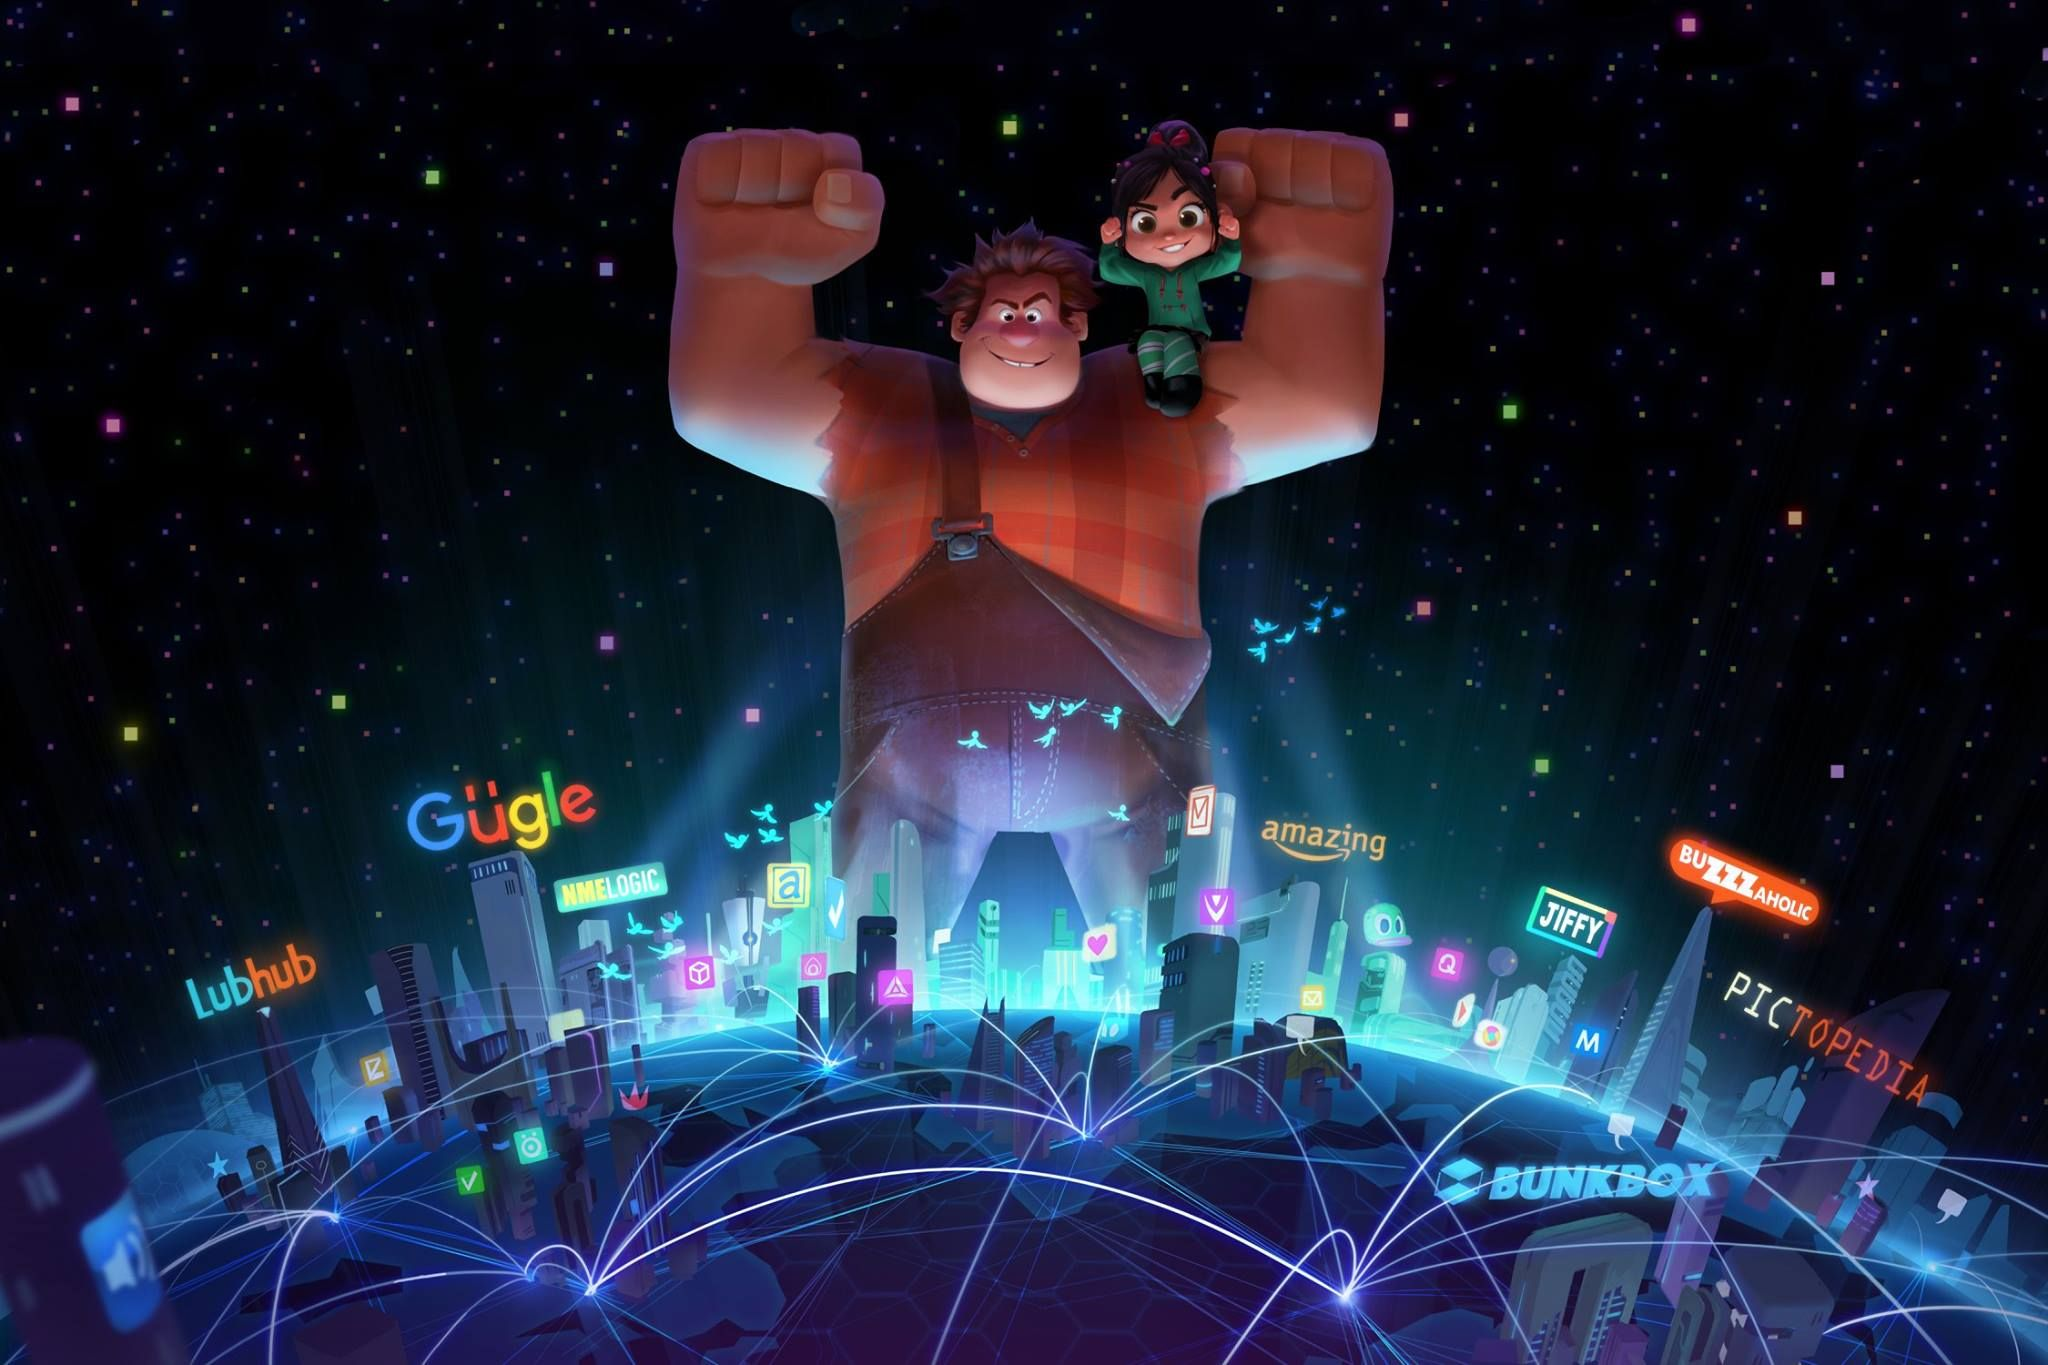 Untitled Wreck-It Ralph Sequel (2018) Worldfree4u – Full Movie Dual Audio BRRip 720P English ESubs